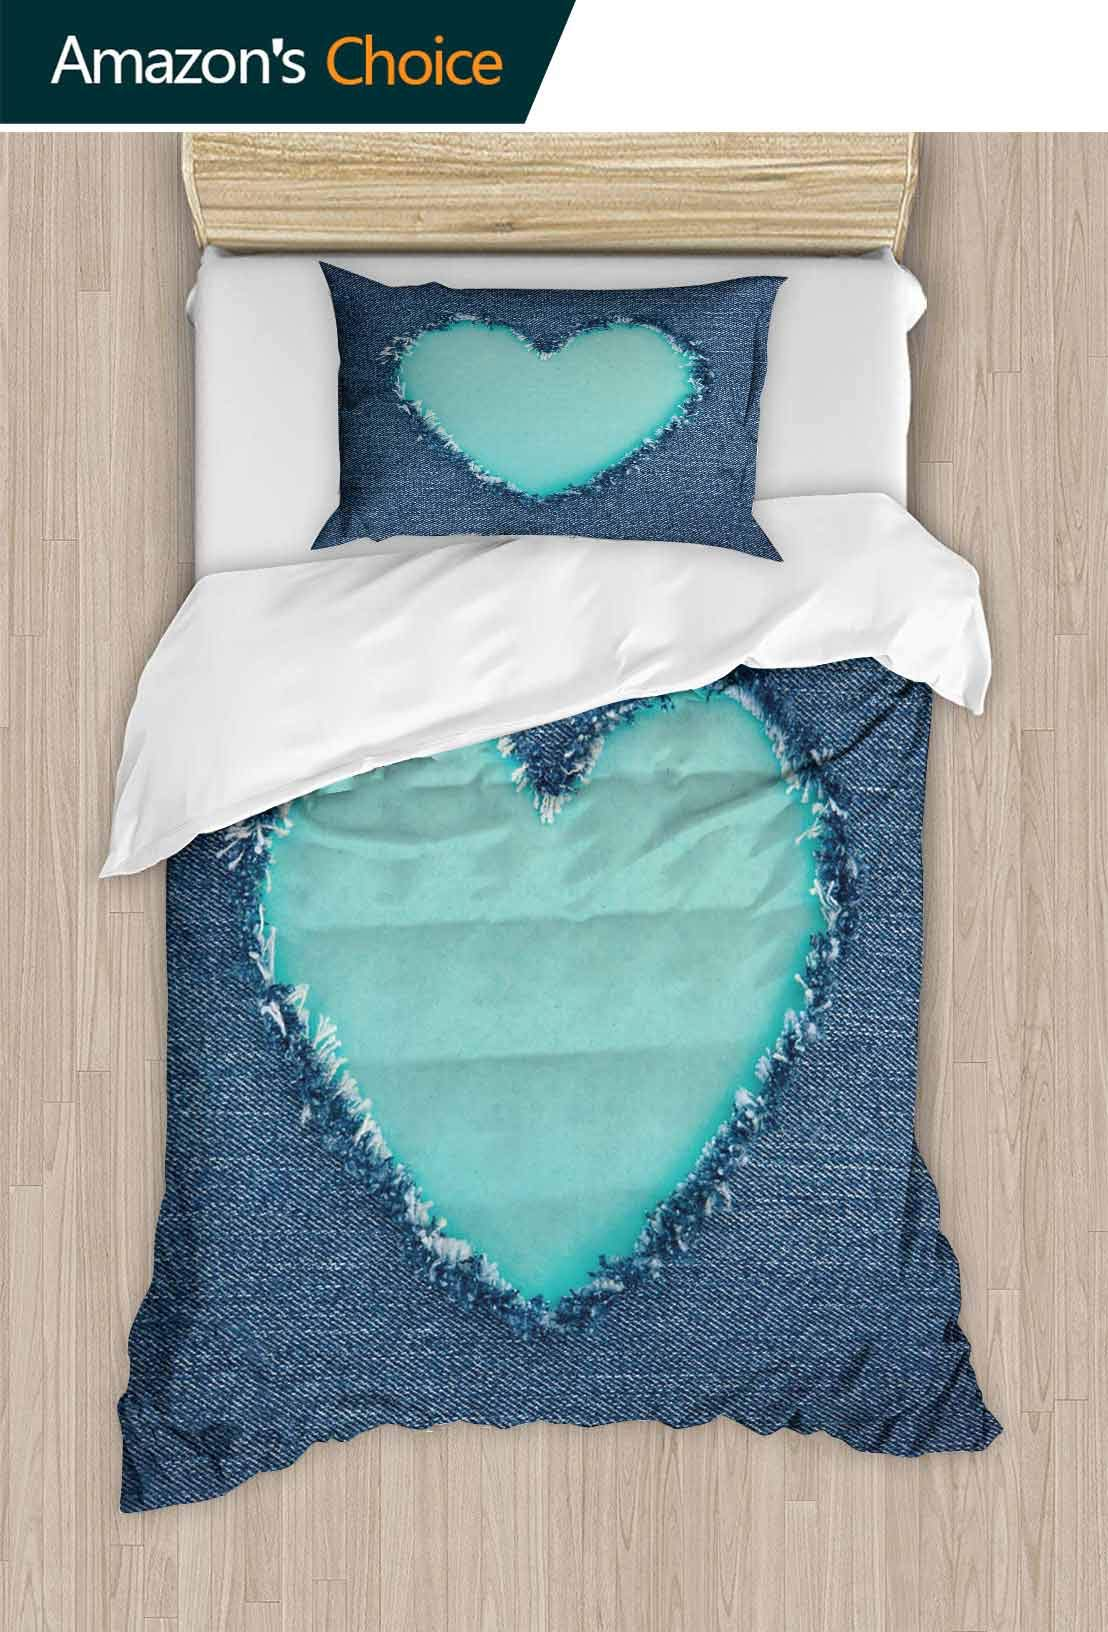 PRUNUSHOME Softest Bedding Blue Vintage Heart Shape for Copy Space Soft and Comfortable King